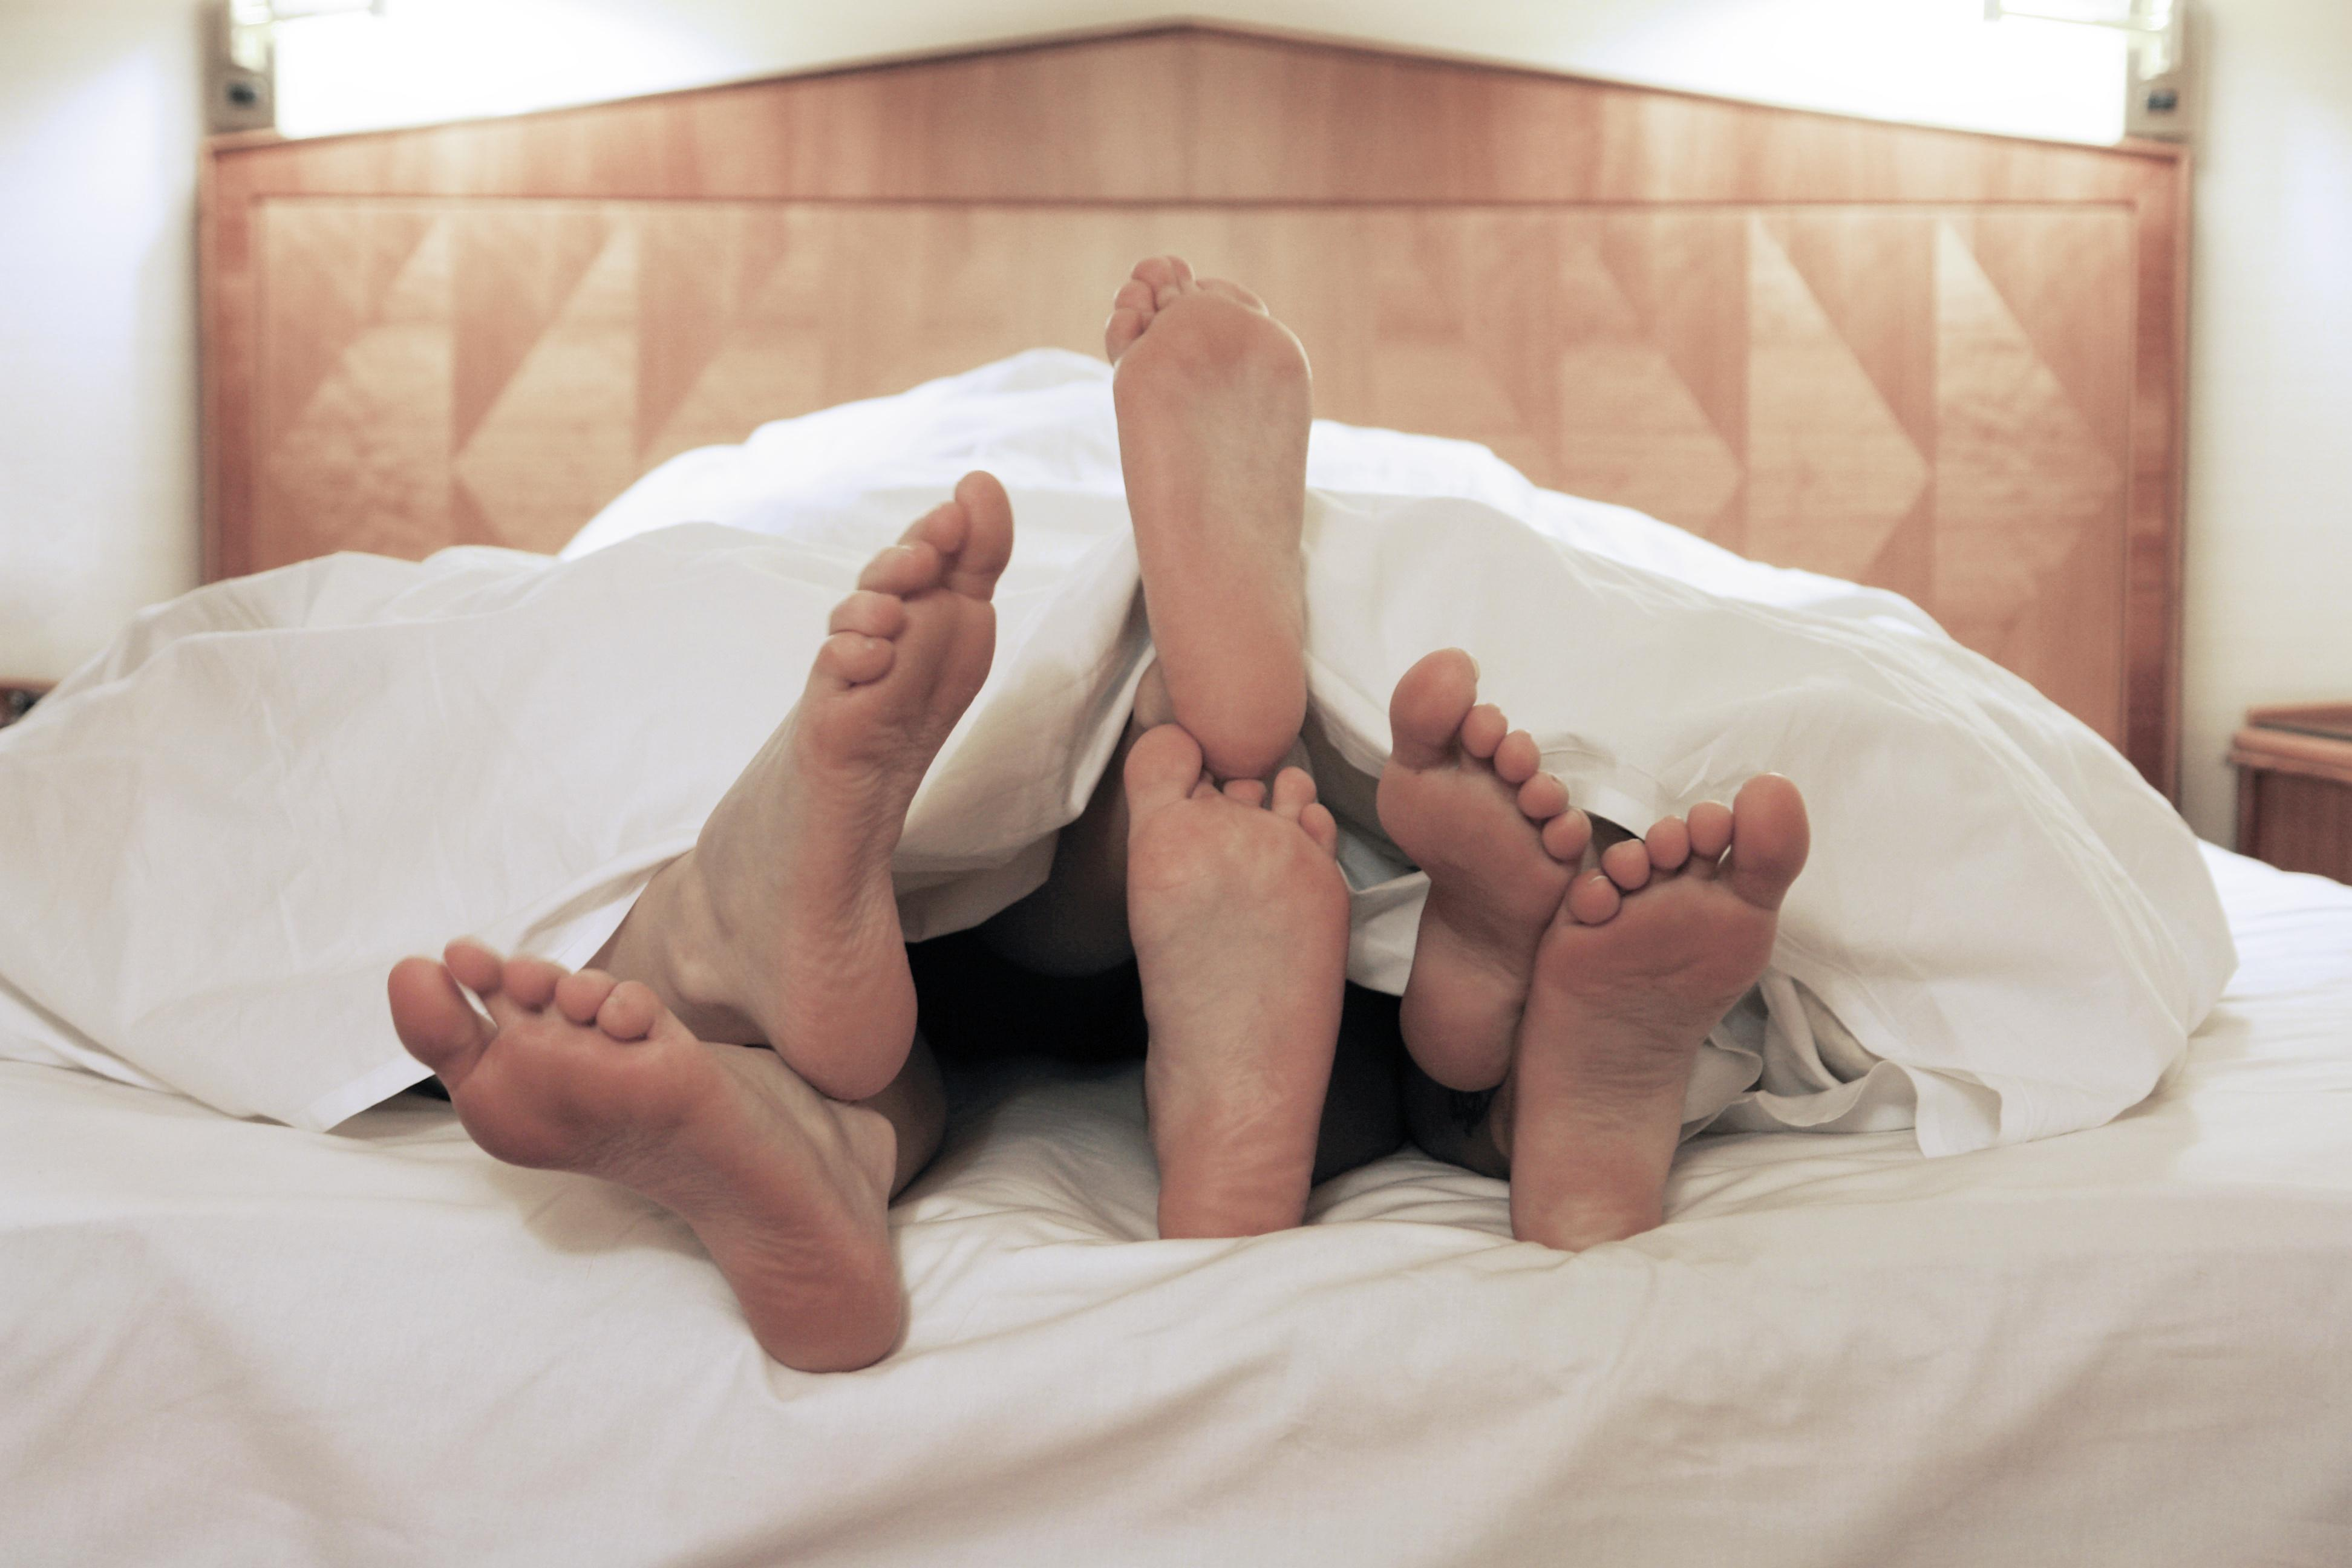 The psychology of the threesome: everyone wants one, but who's truly ready for it?